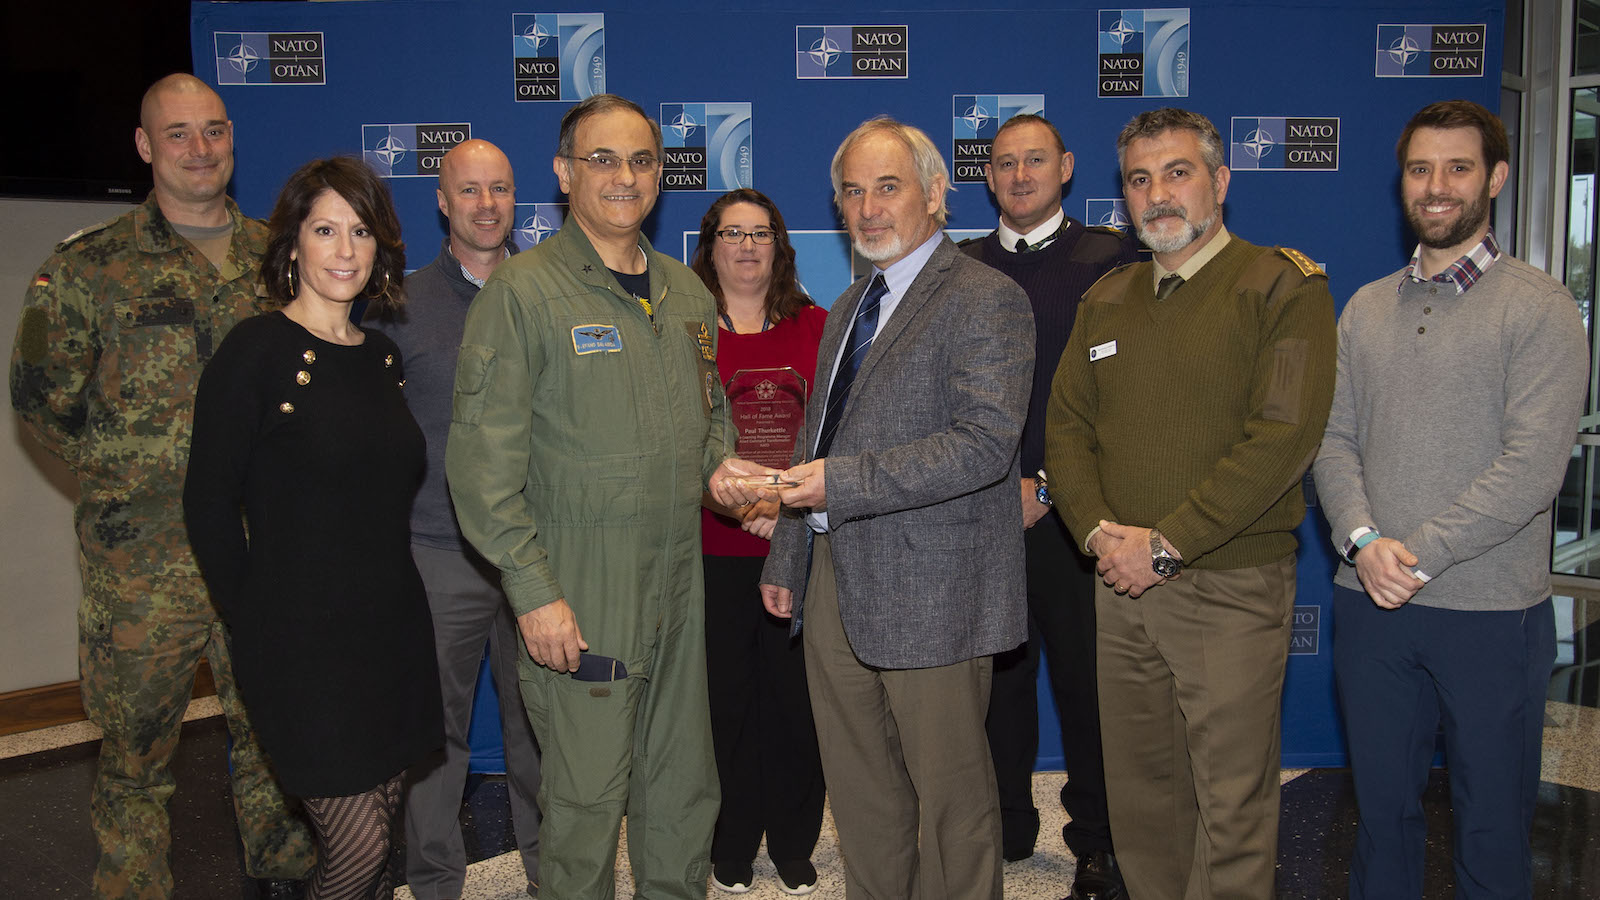 NATO's e-Learning Programme Award